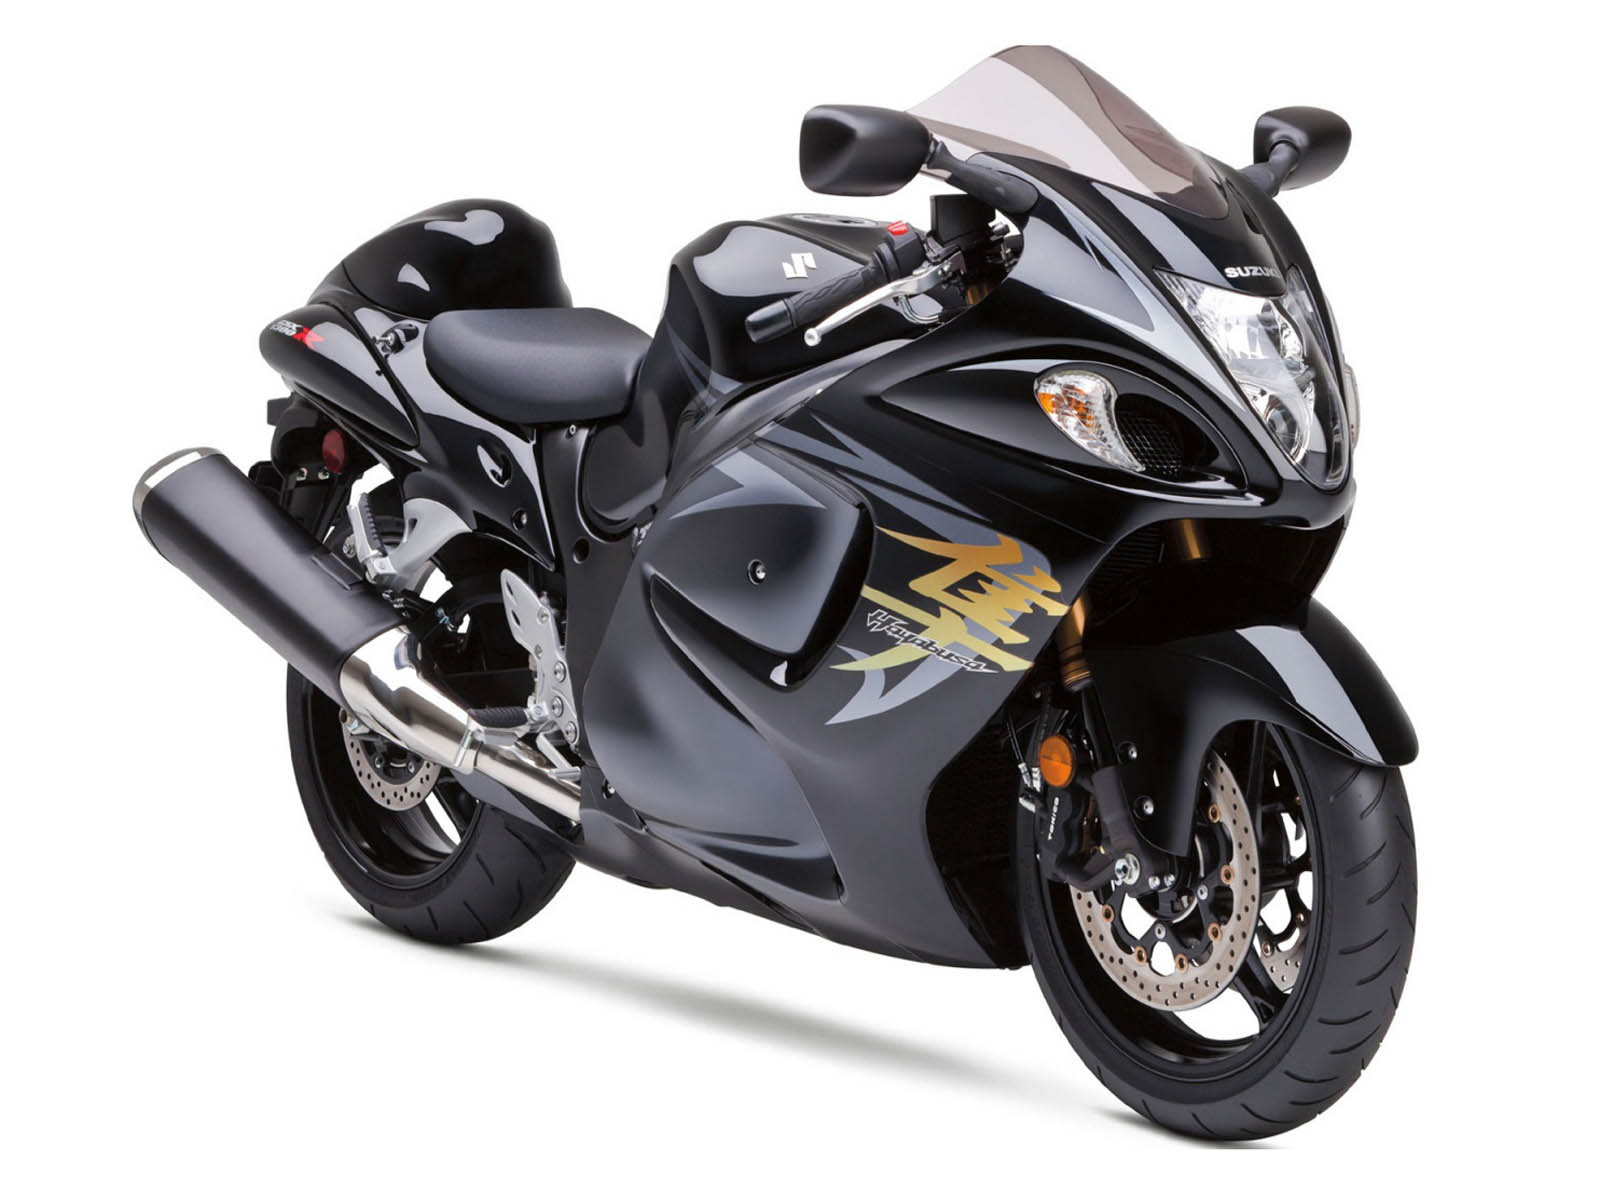 wallpapers: Suzuki Hayabusa GSX1300R Bike Wallpapers